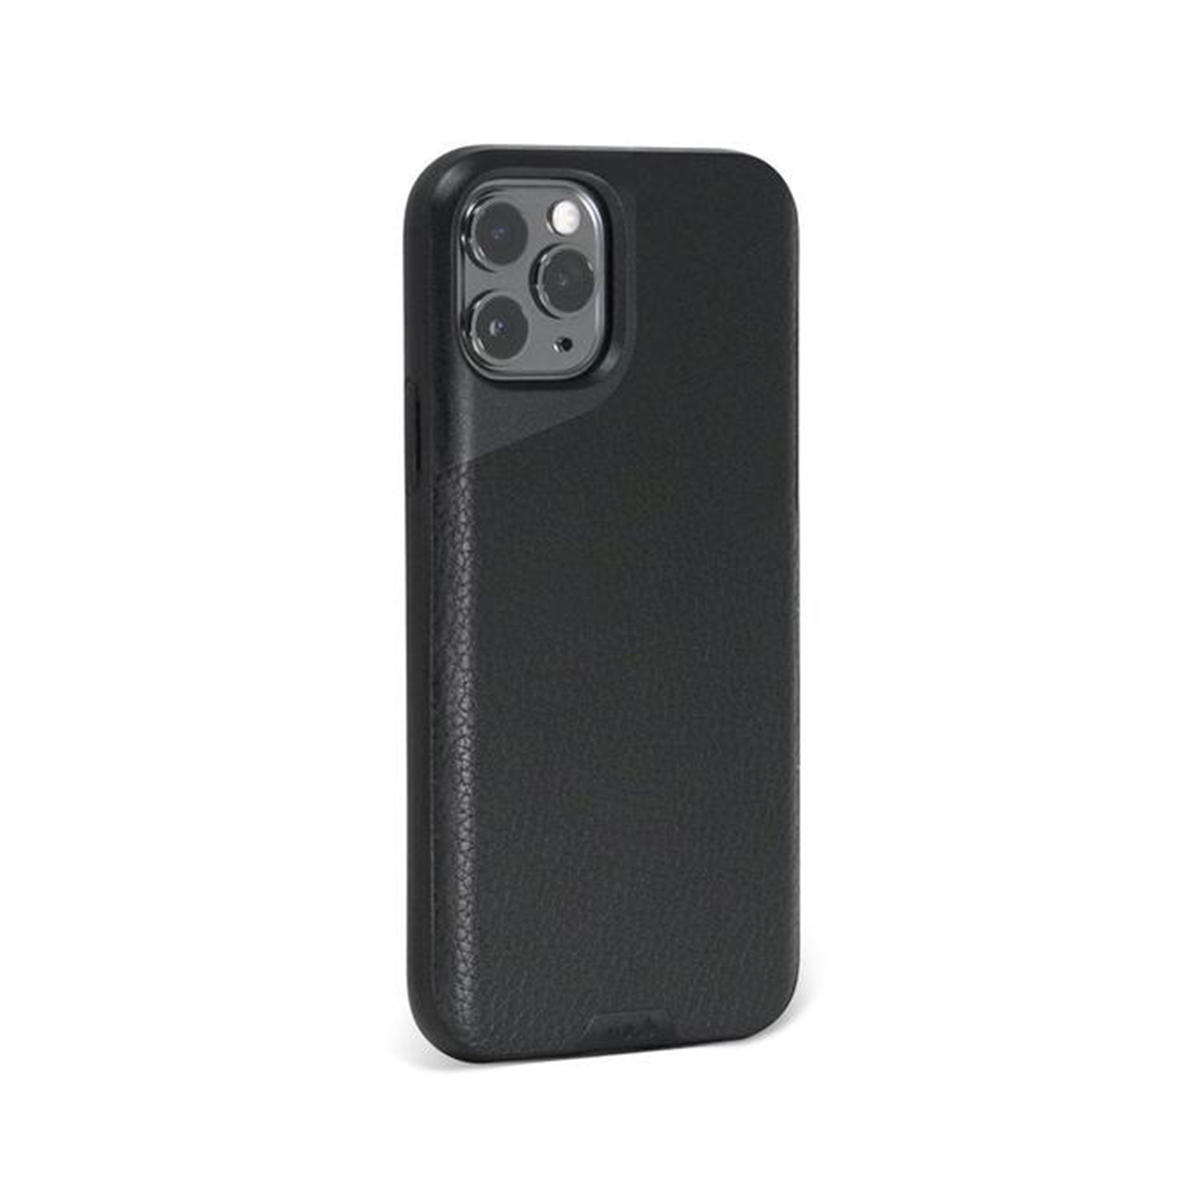 Mous - Contour Case for iPhone 11 Pro - Black Leather